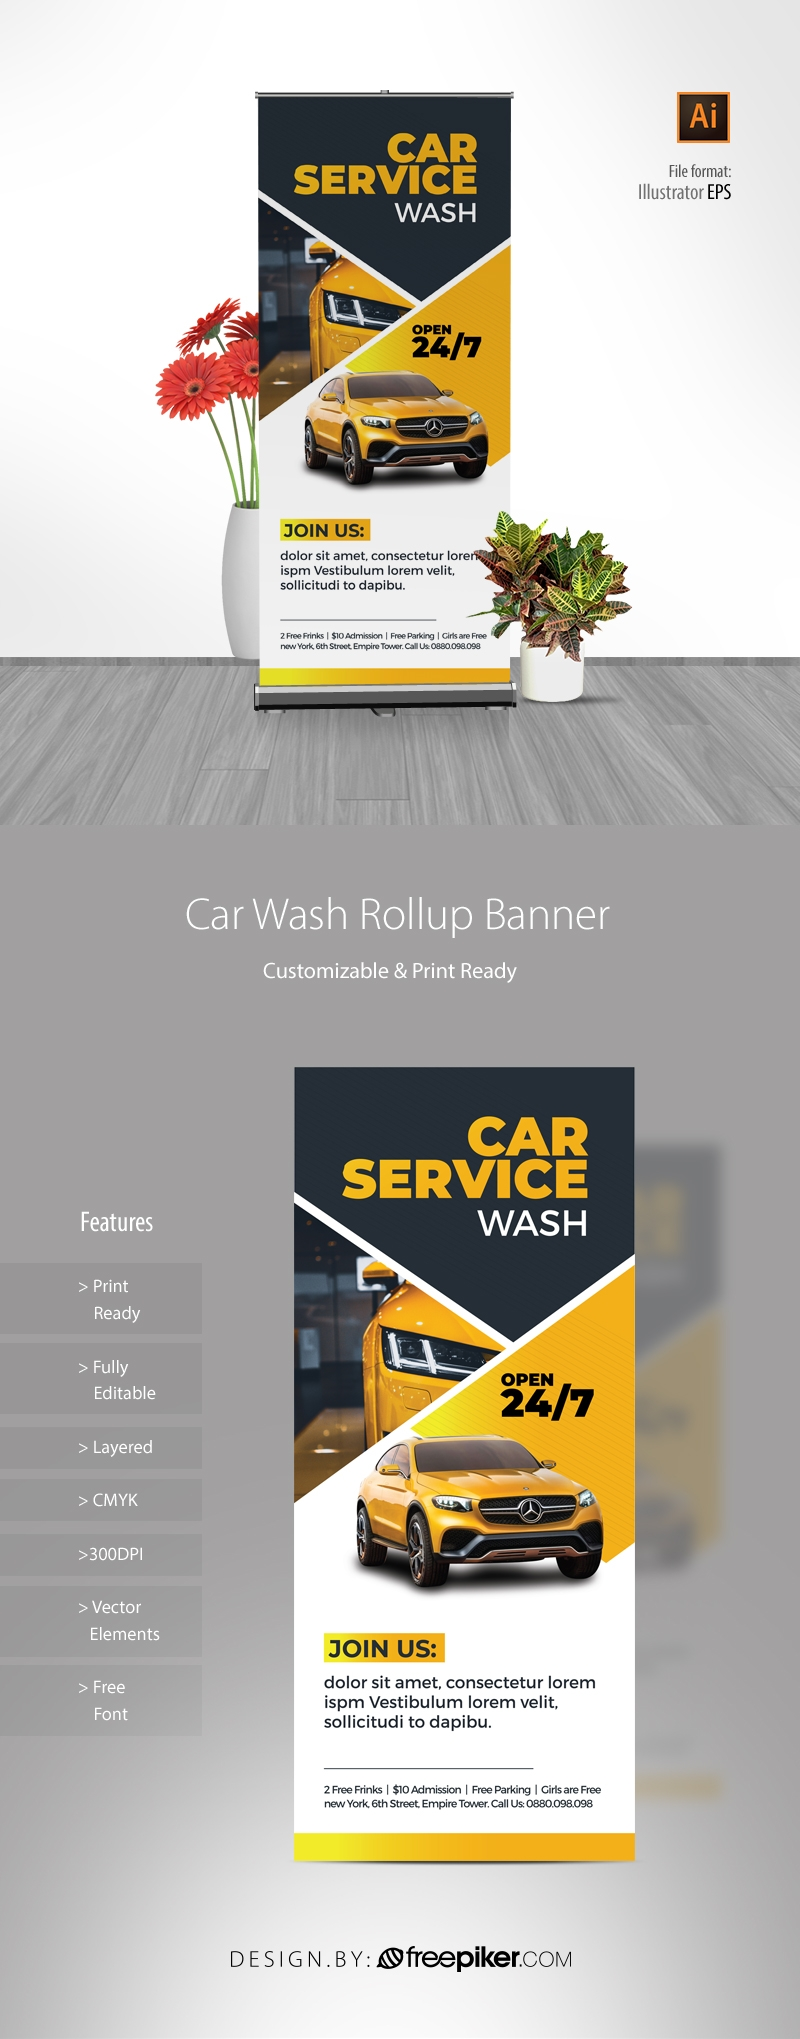 Car Wash Service Rollup Banner With Yellow Accent